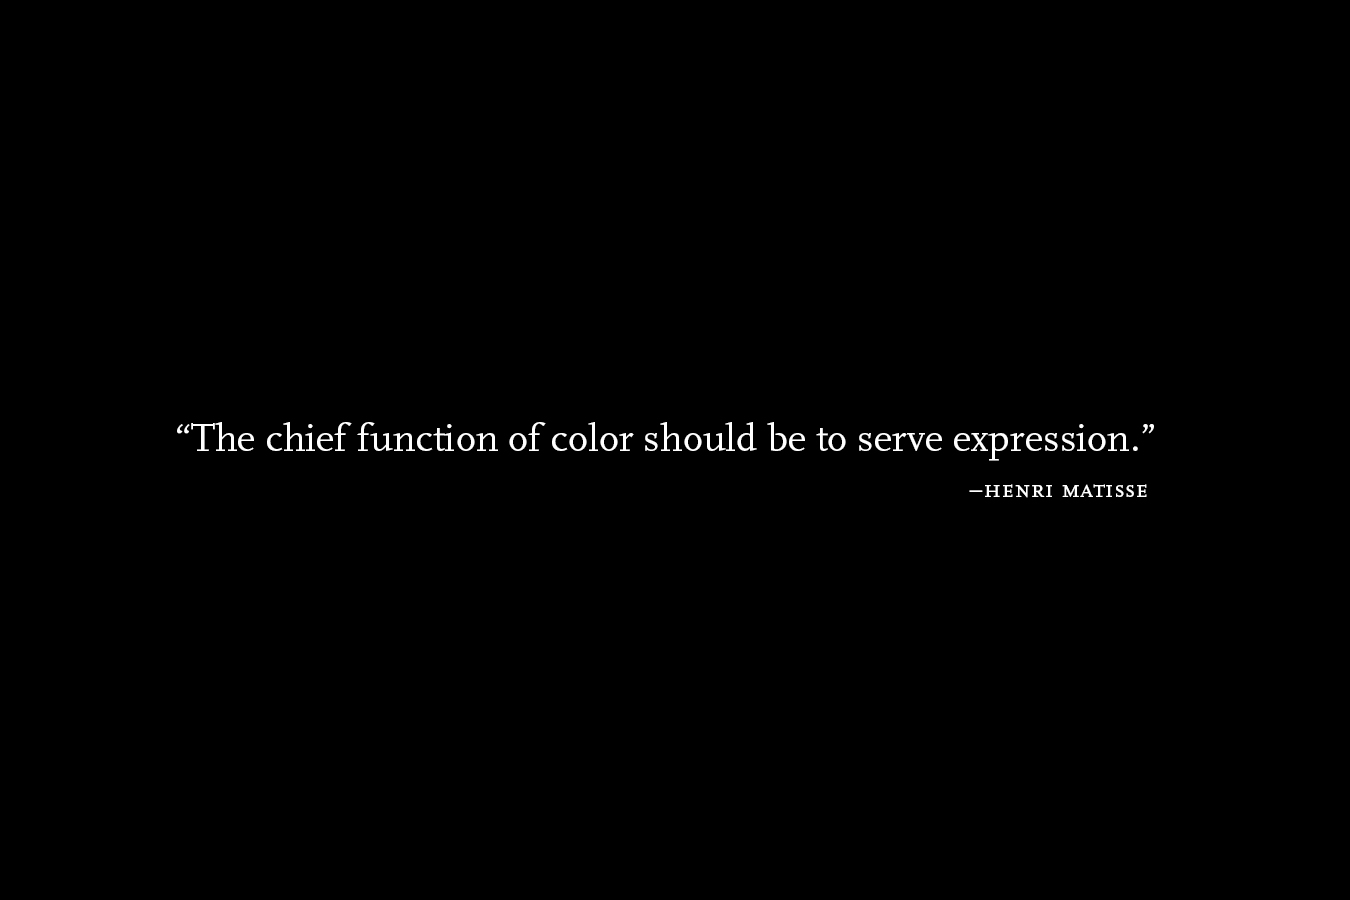 color quote_1.jpg